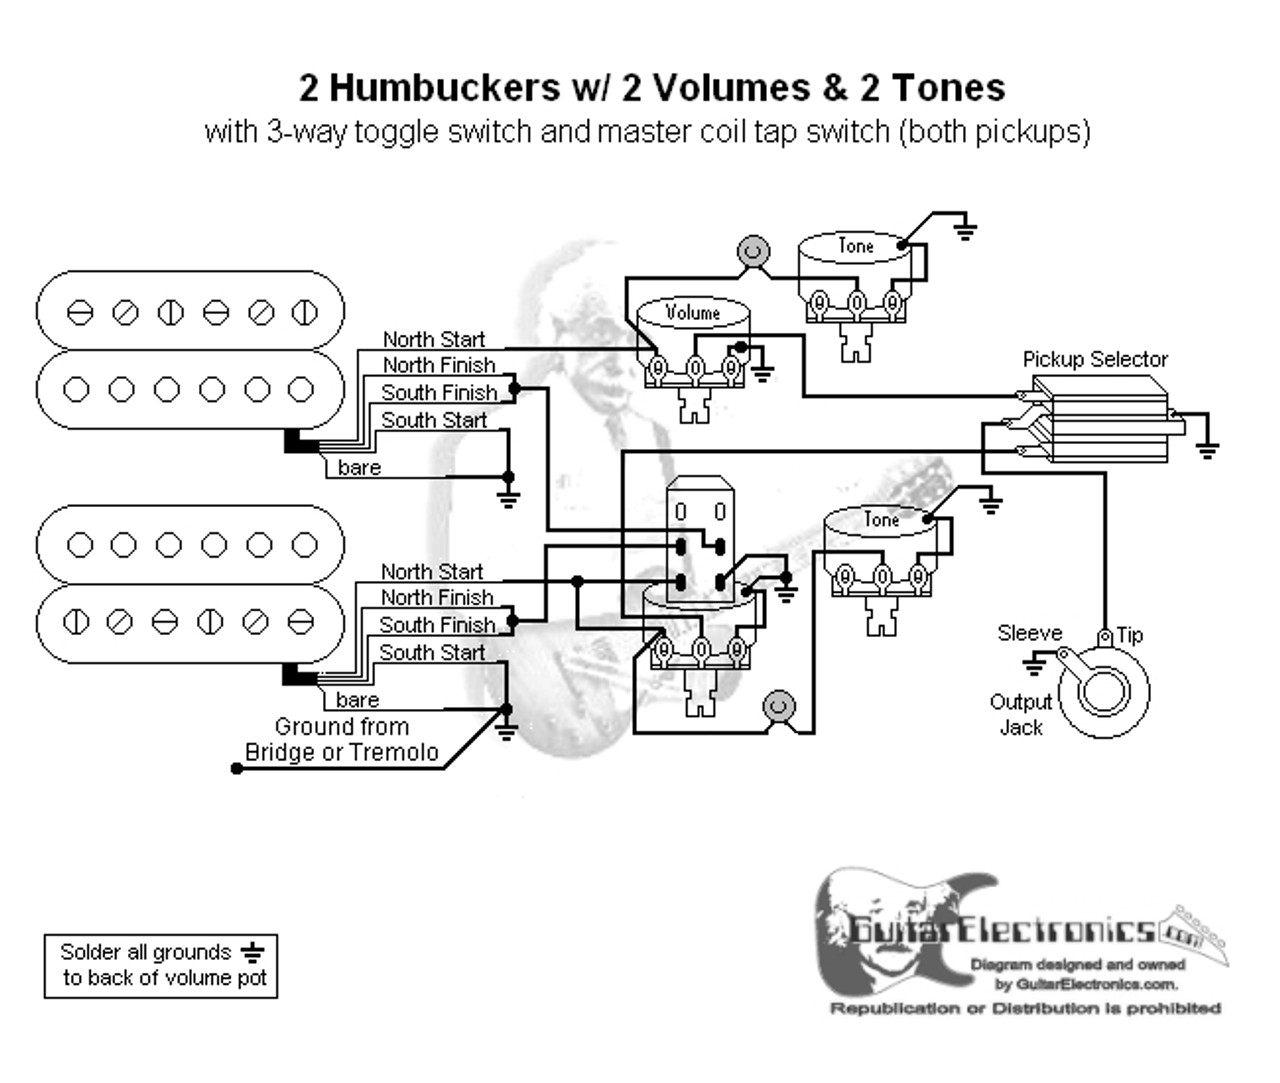 small resolution of 2 humbuckers 3 way toggle switch 2 volumes 2 tones coil tap hss with coil split